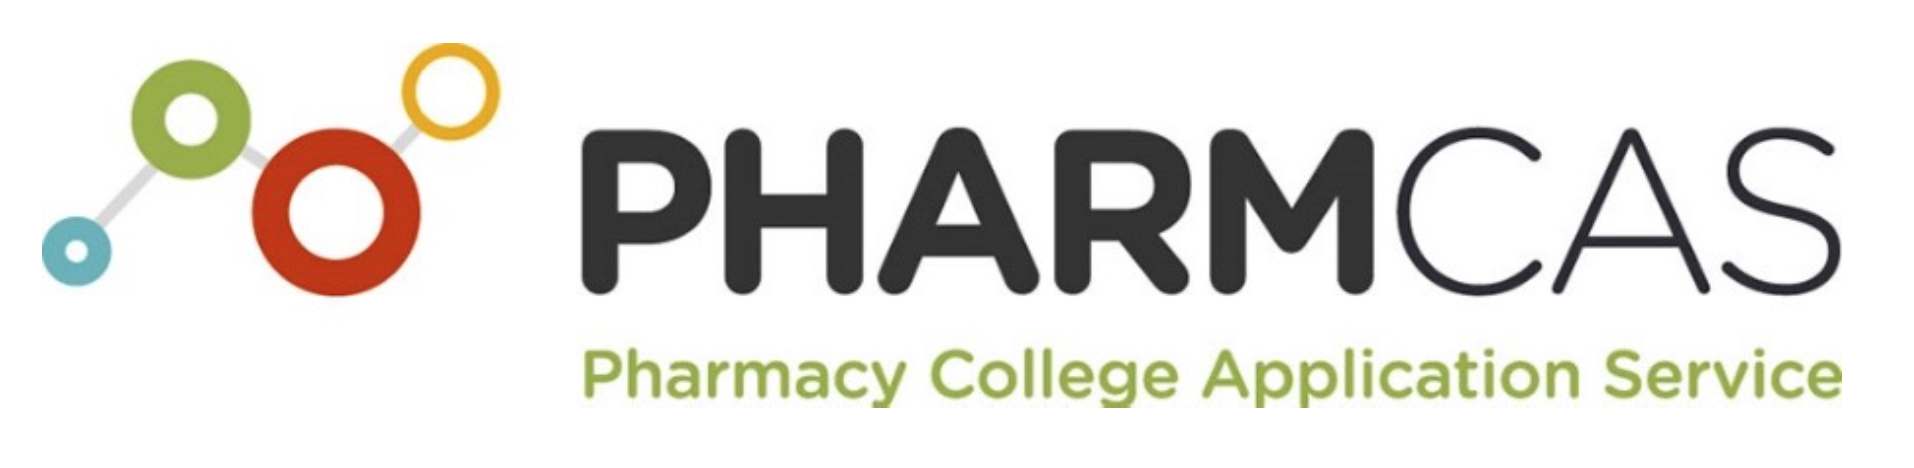 pharmacist schools and colleges application service PHARMCAS